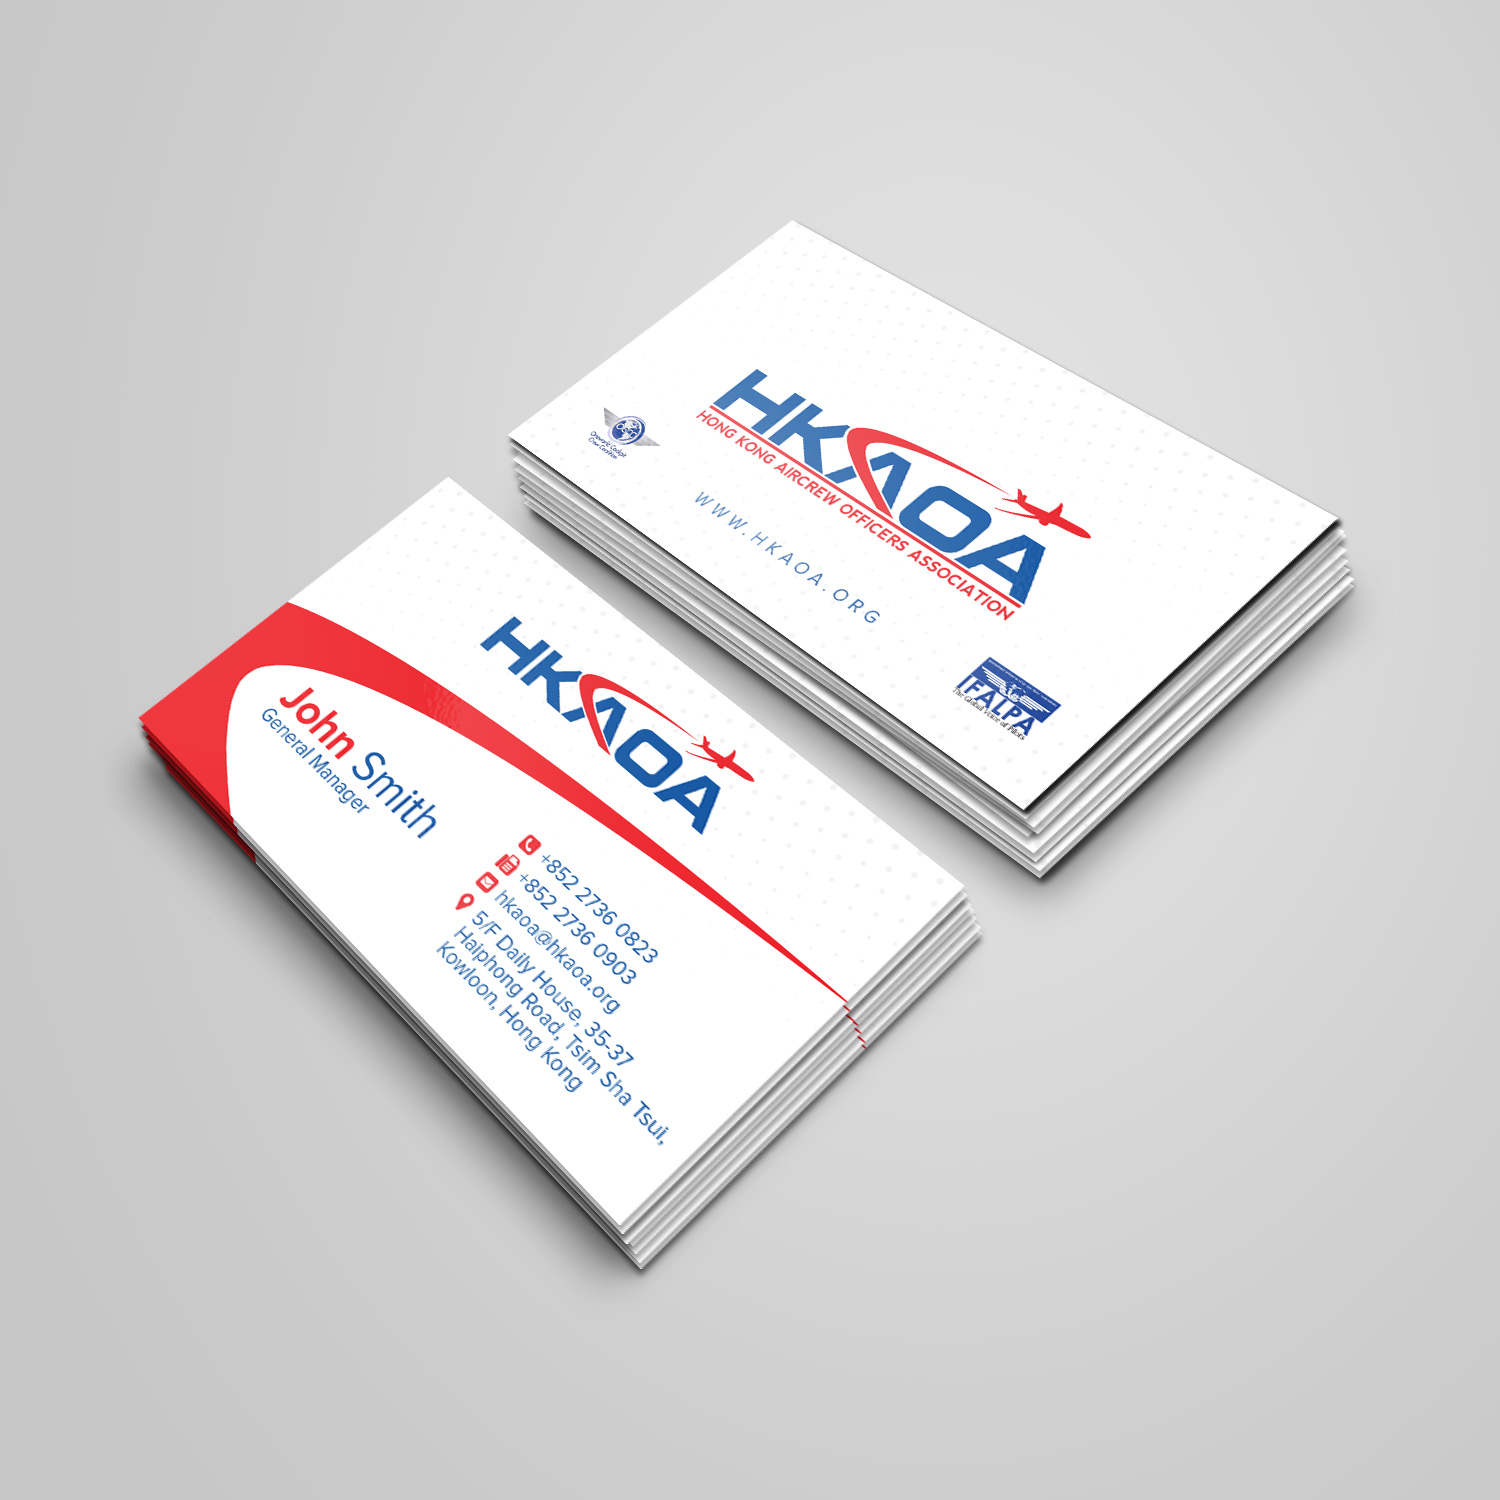 Serious professional business business card design for sundog asia business card design by gomedia for sundog asia design 17705133 reheart Image collections